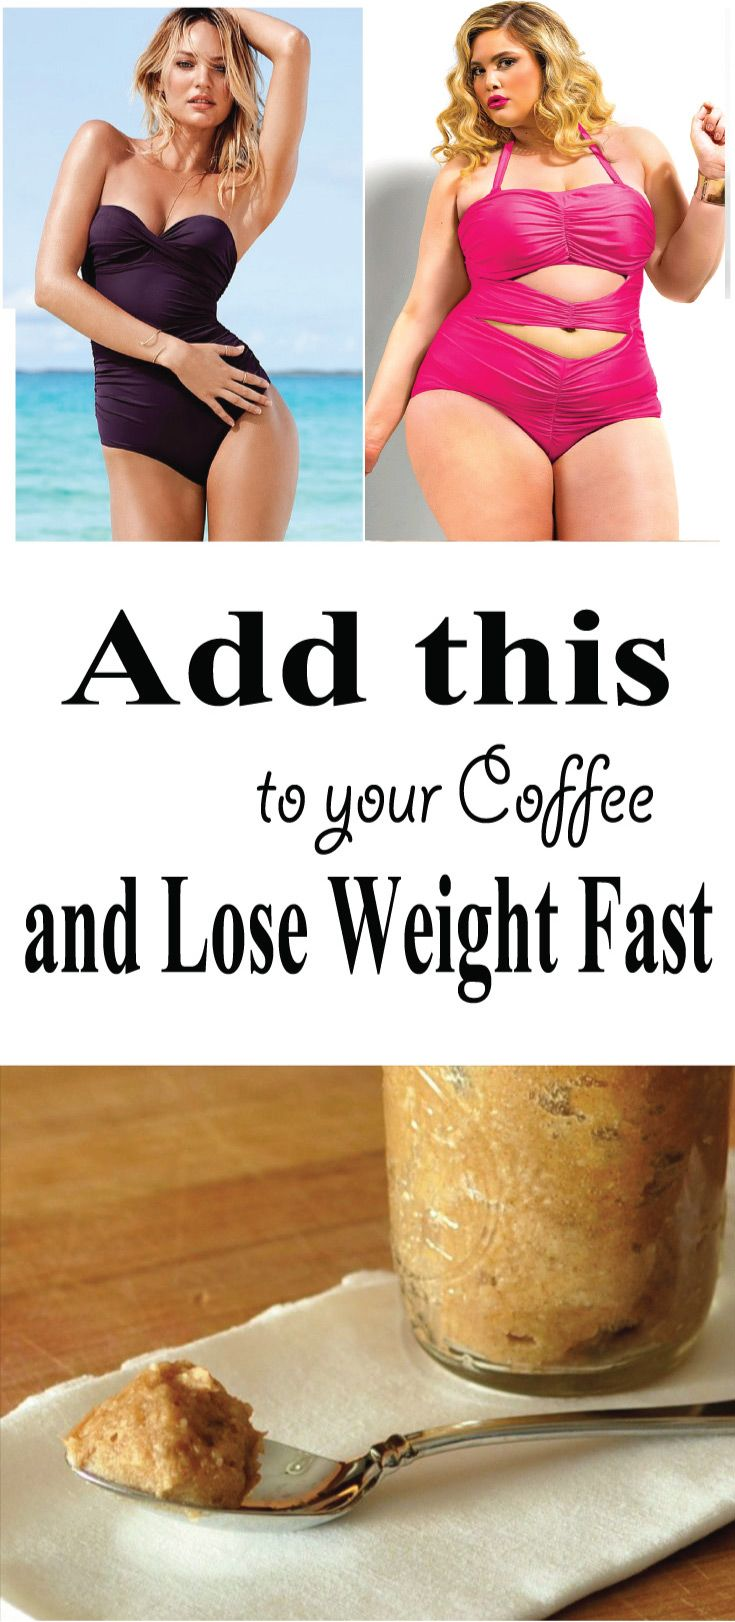 add this to your coffee and lose weight fast